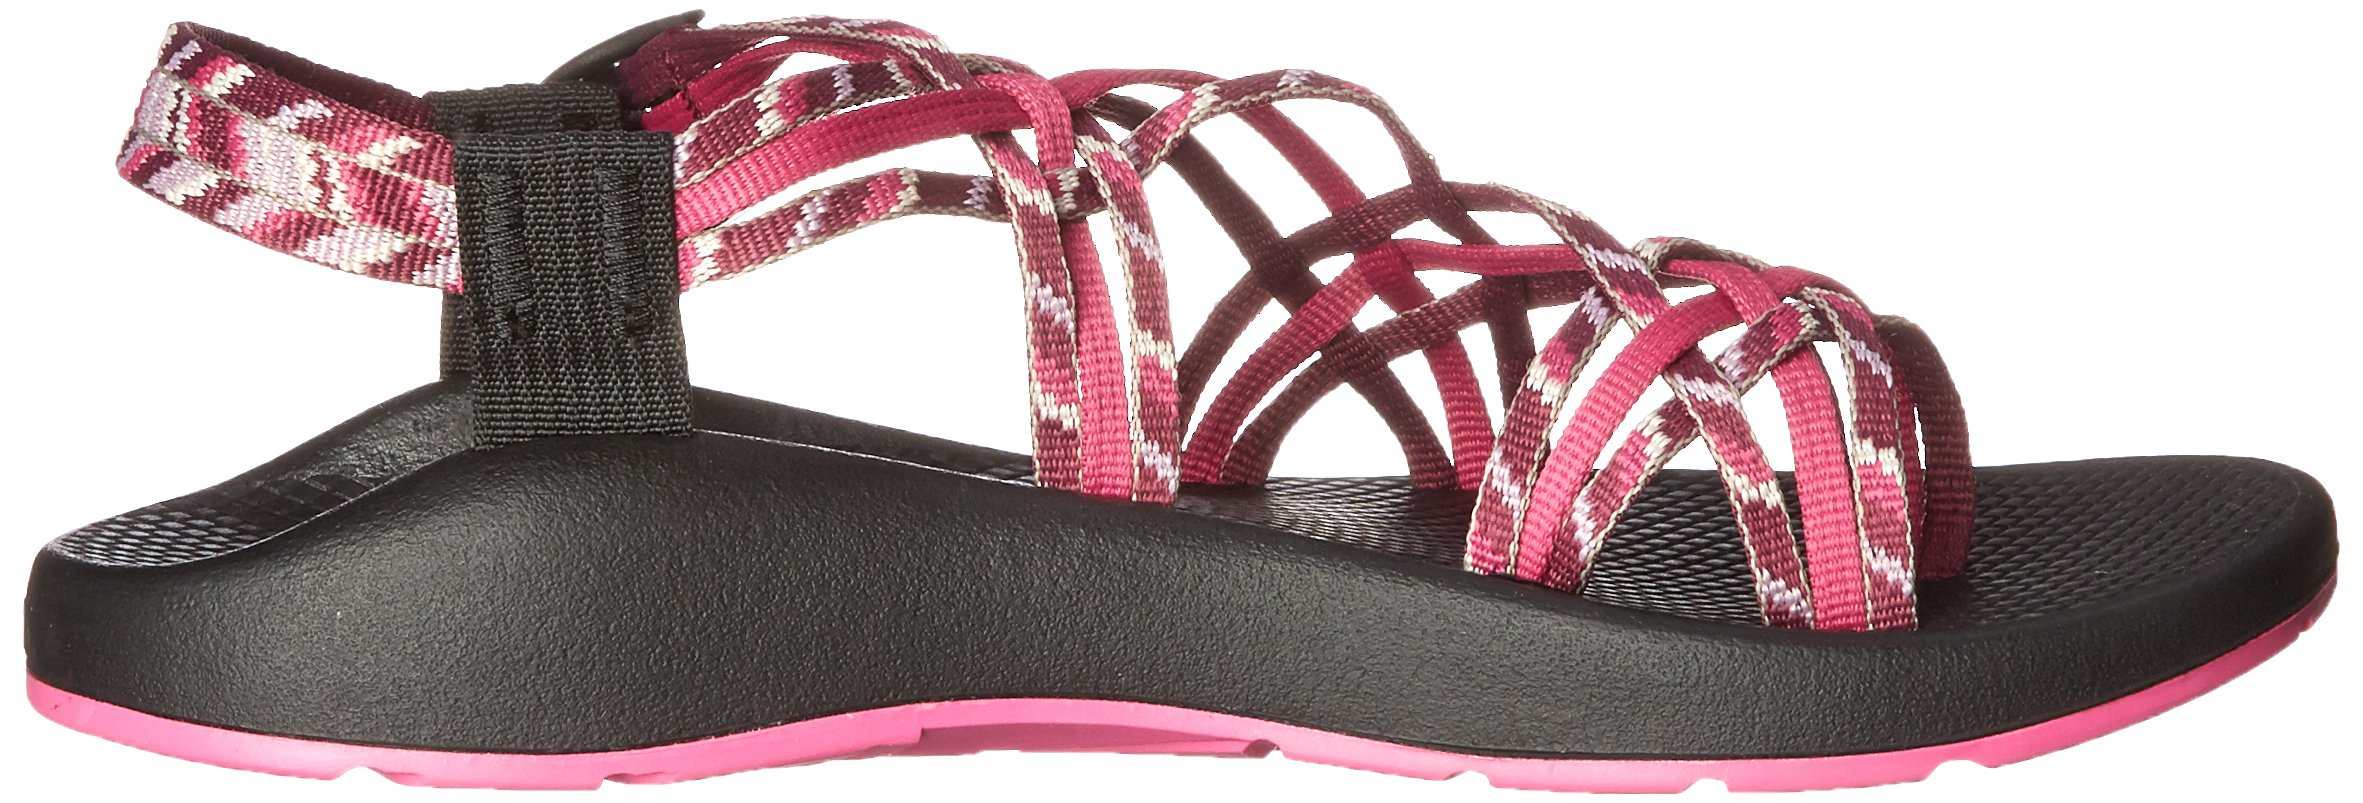 Chaco Women's ZX3 Yampa W Sandal, Clashing, 5 M US by Chaco (Image #7)